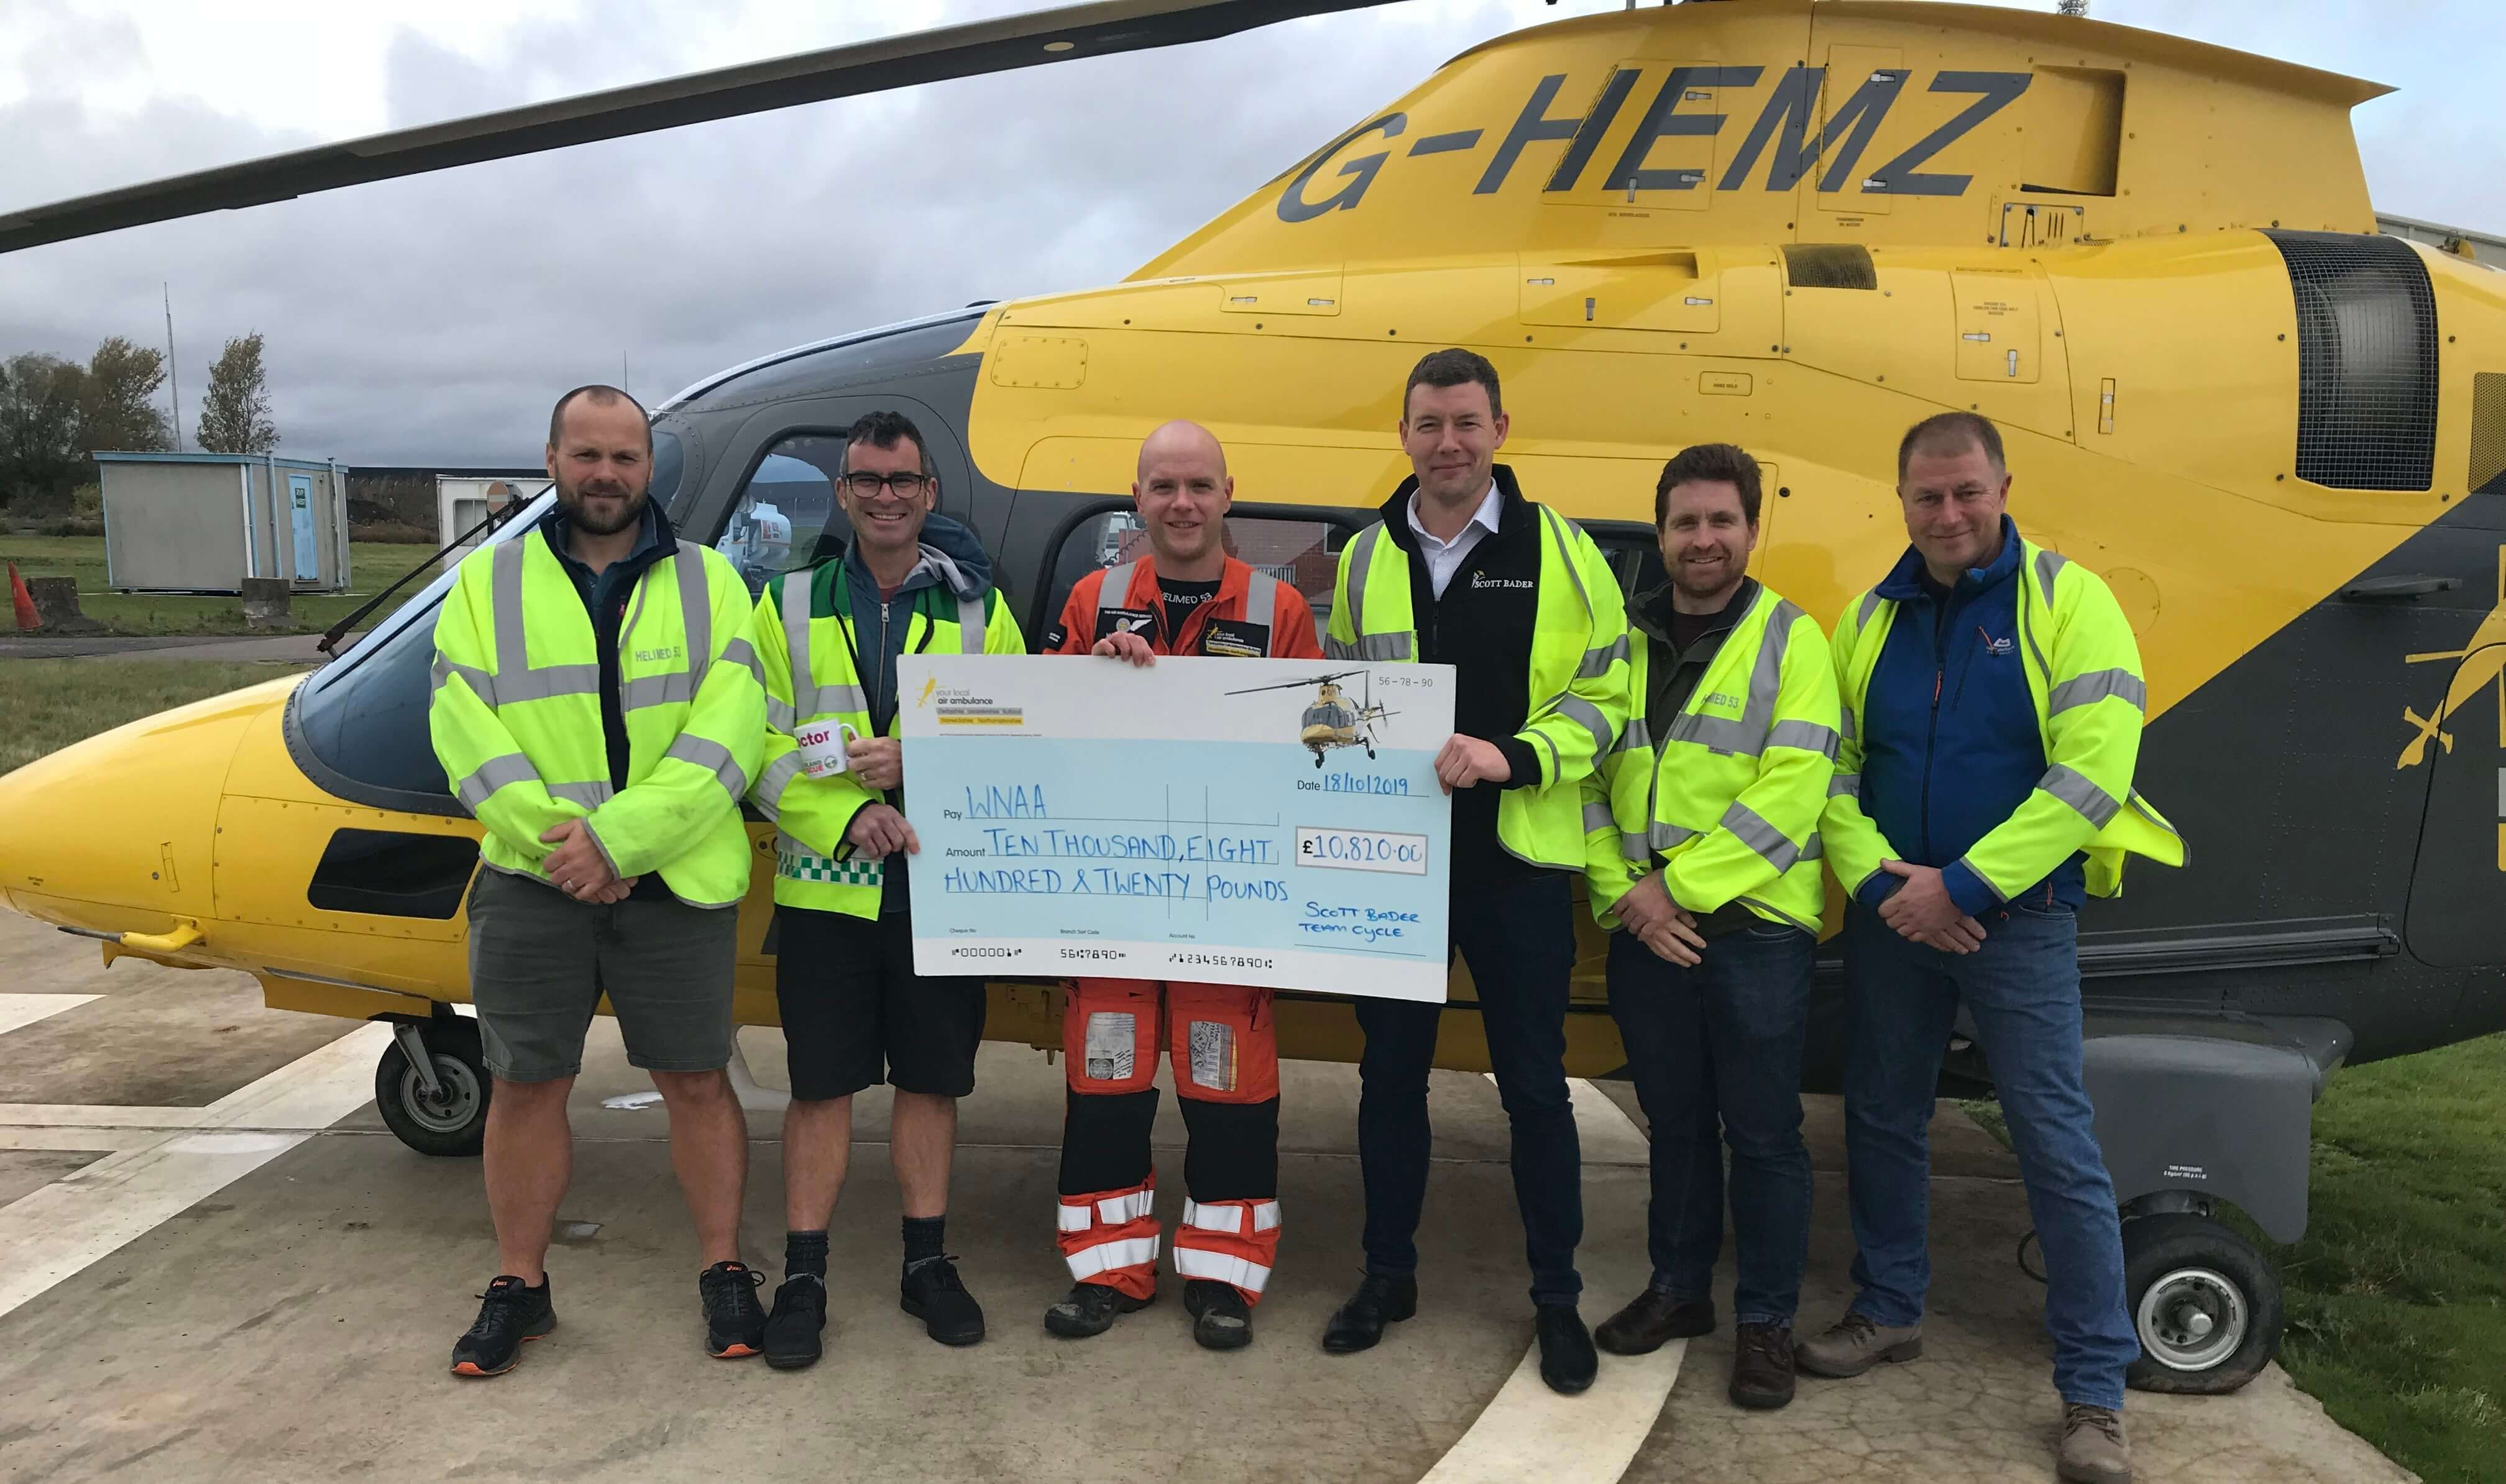 Scott Bader's Lands' End to John O'Groats cycle team raises over £10,000 for The Warwickshire & Northamptonshire Air Ambulance!